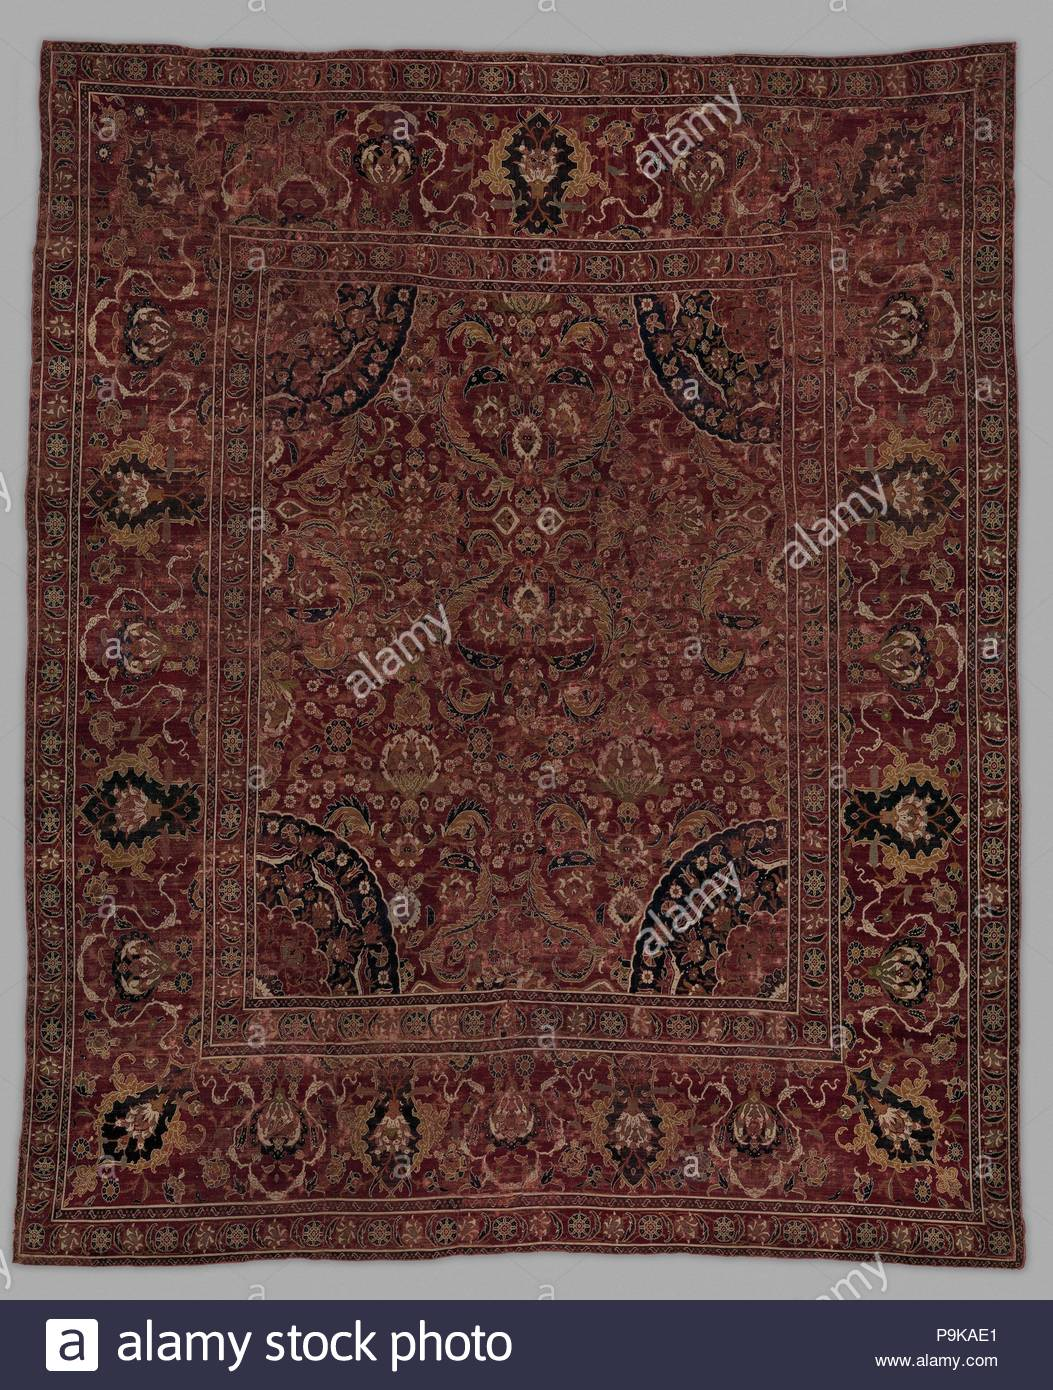 Carpet 17th Century Attributed To Egypt Wool Warp Weft And Pile